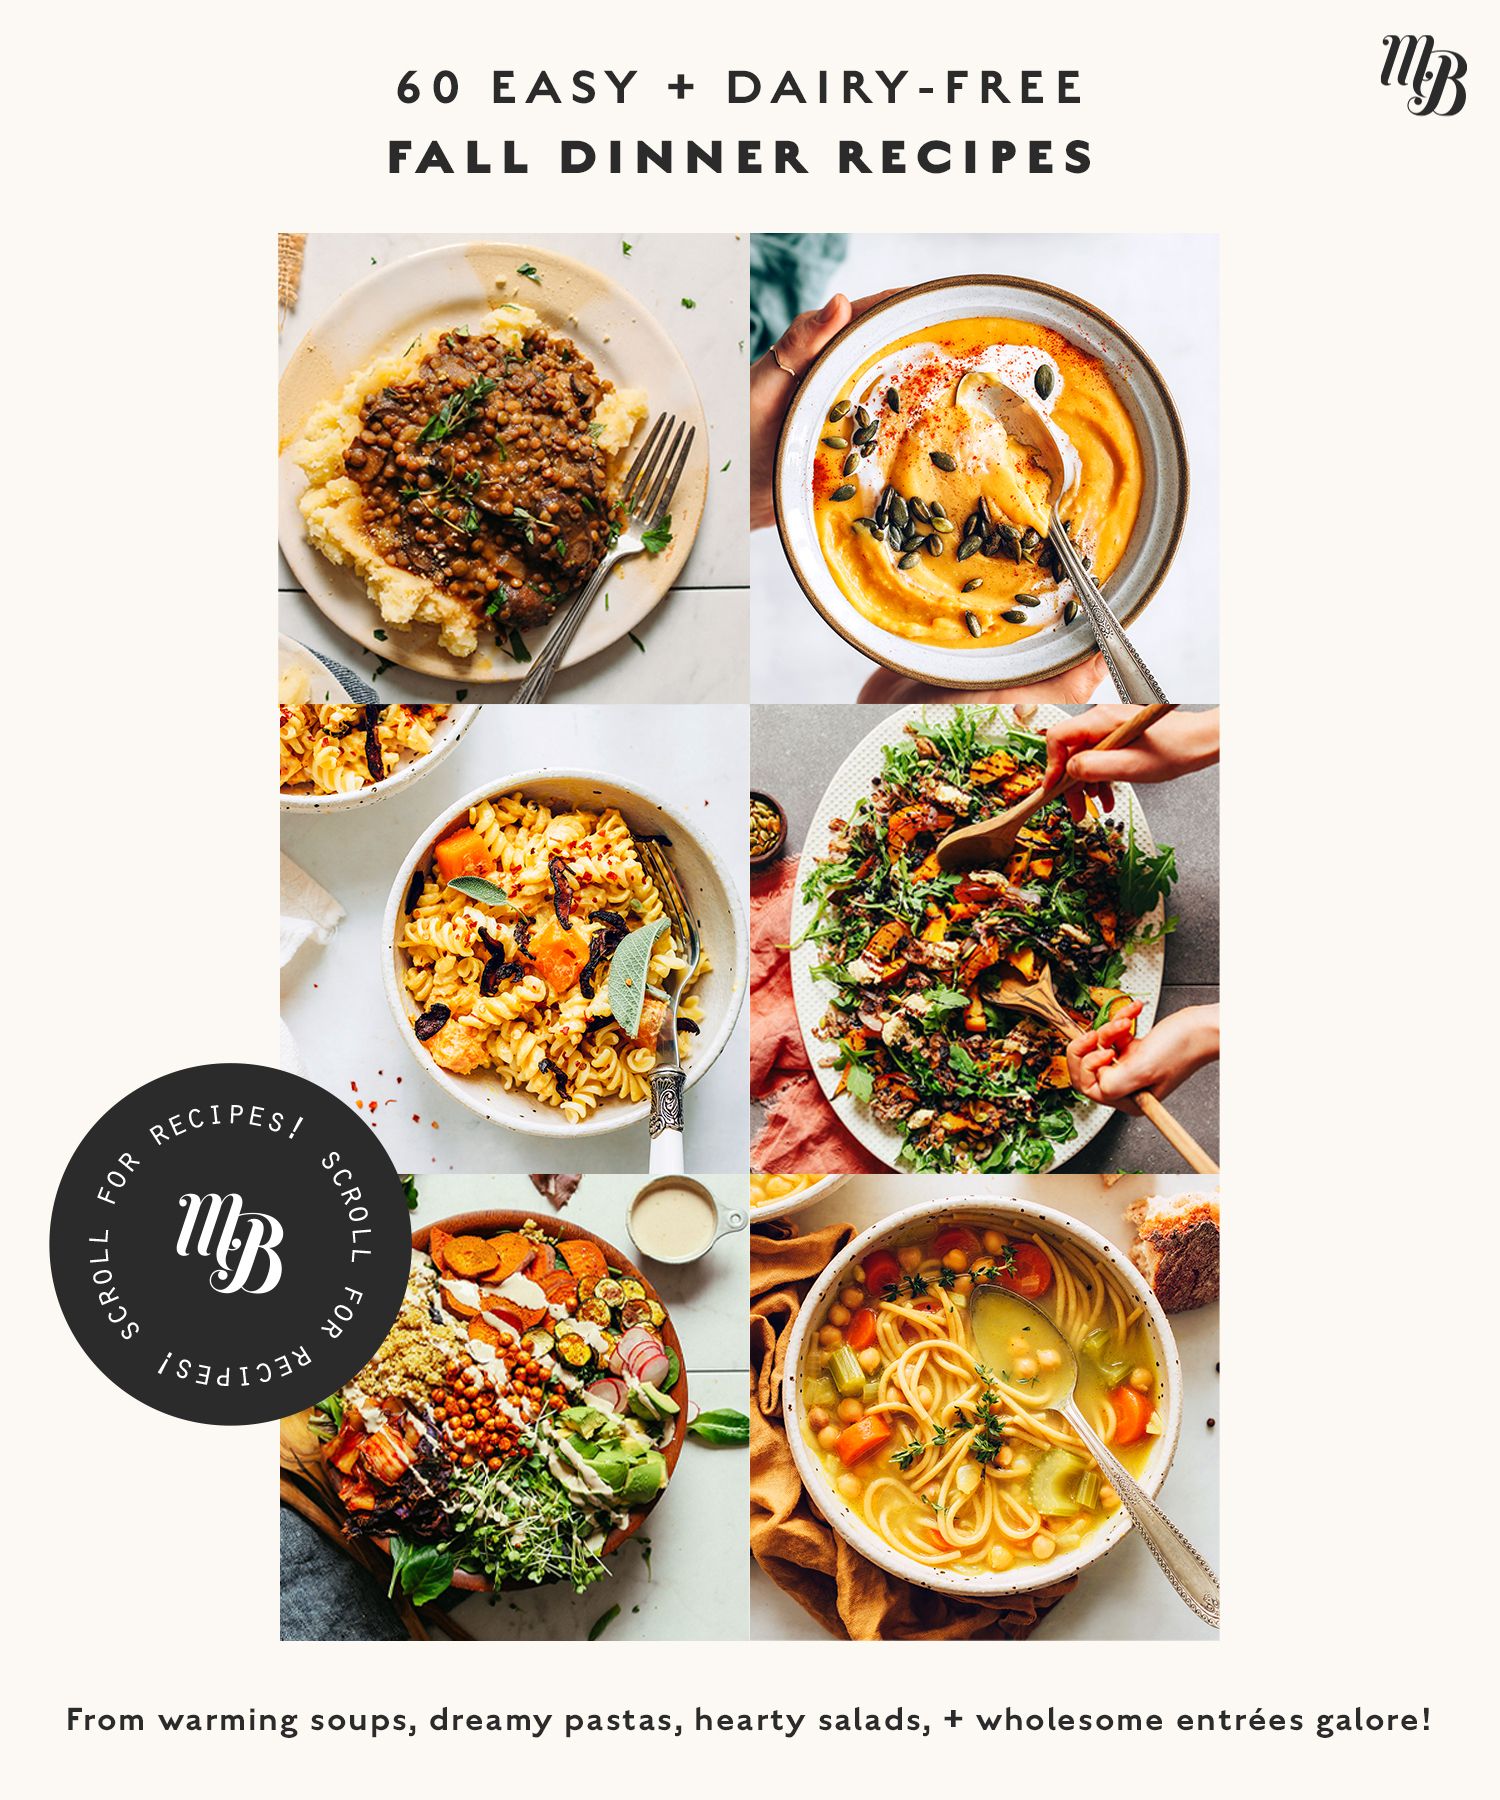 Assortment of easy dairy-free fall dinner recipes